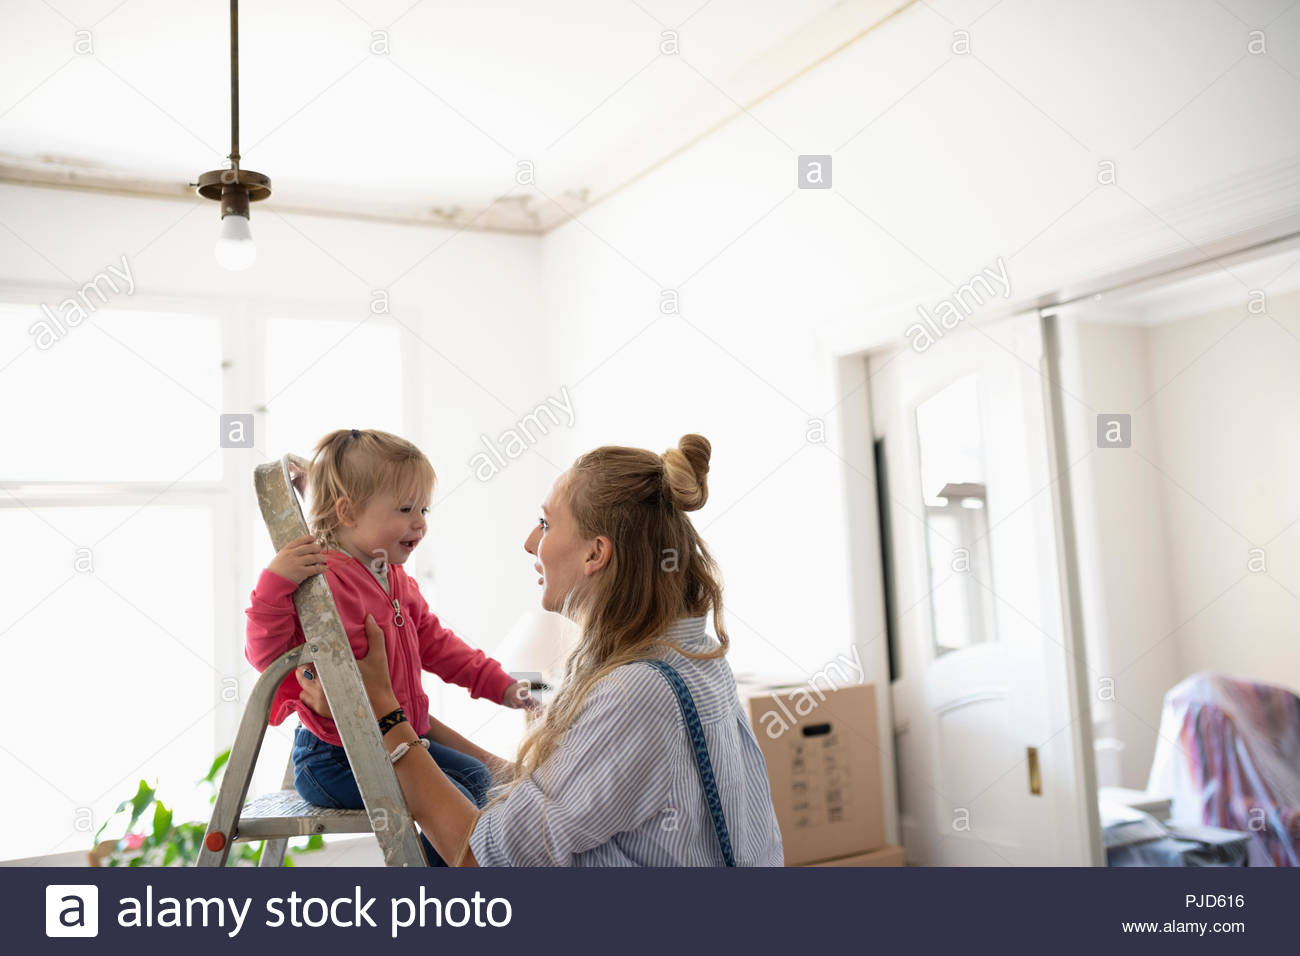 Playful mother and daughter moving into new home - Stock Image